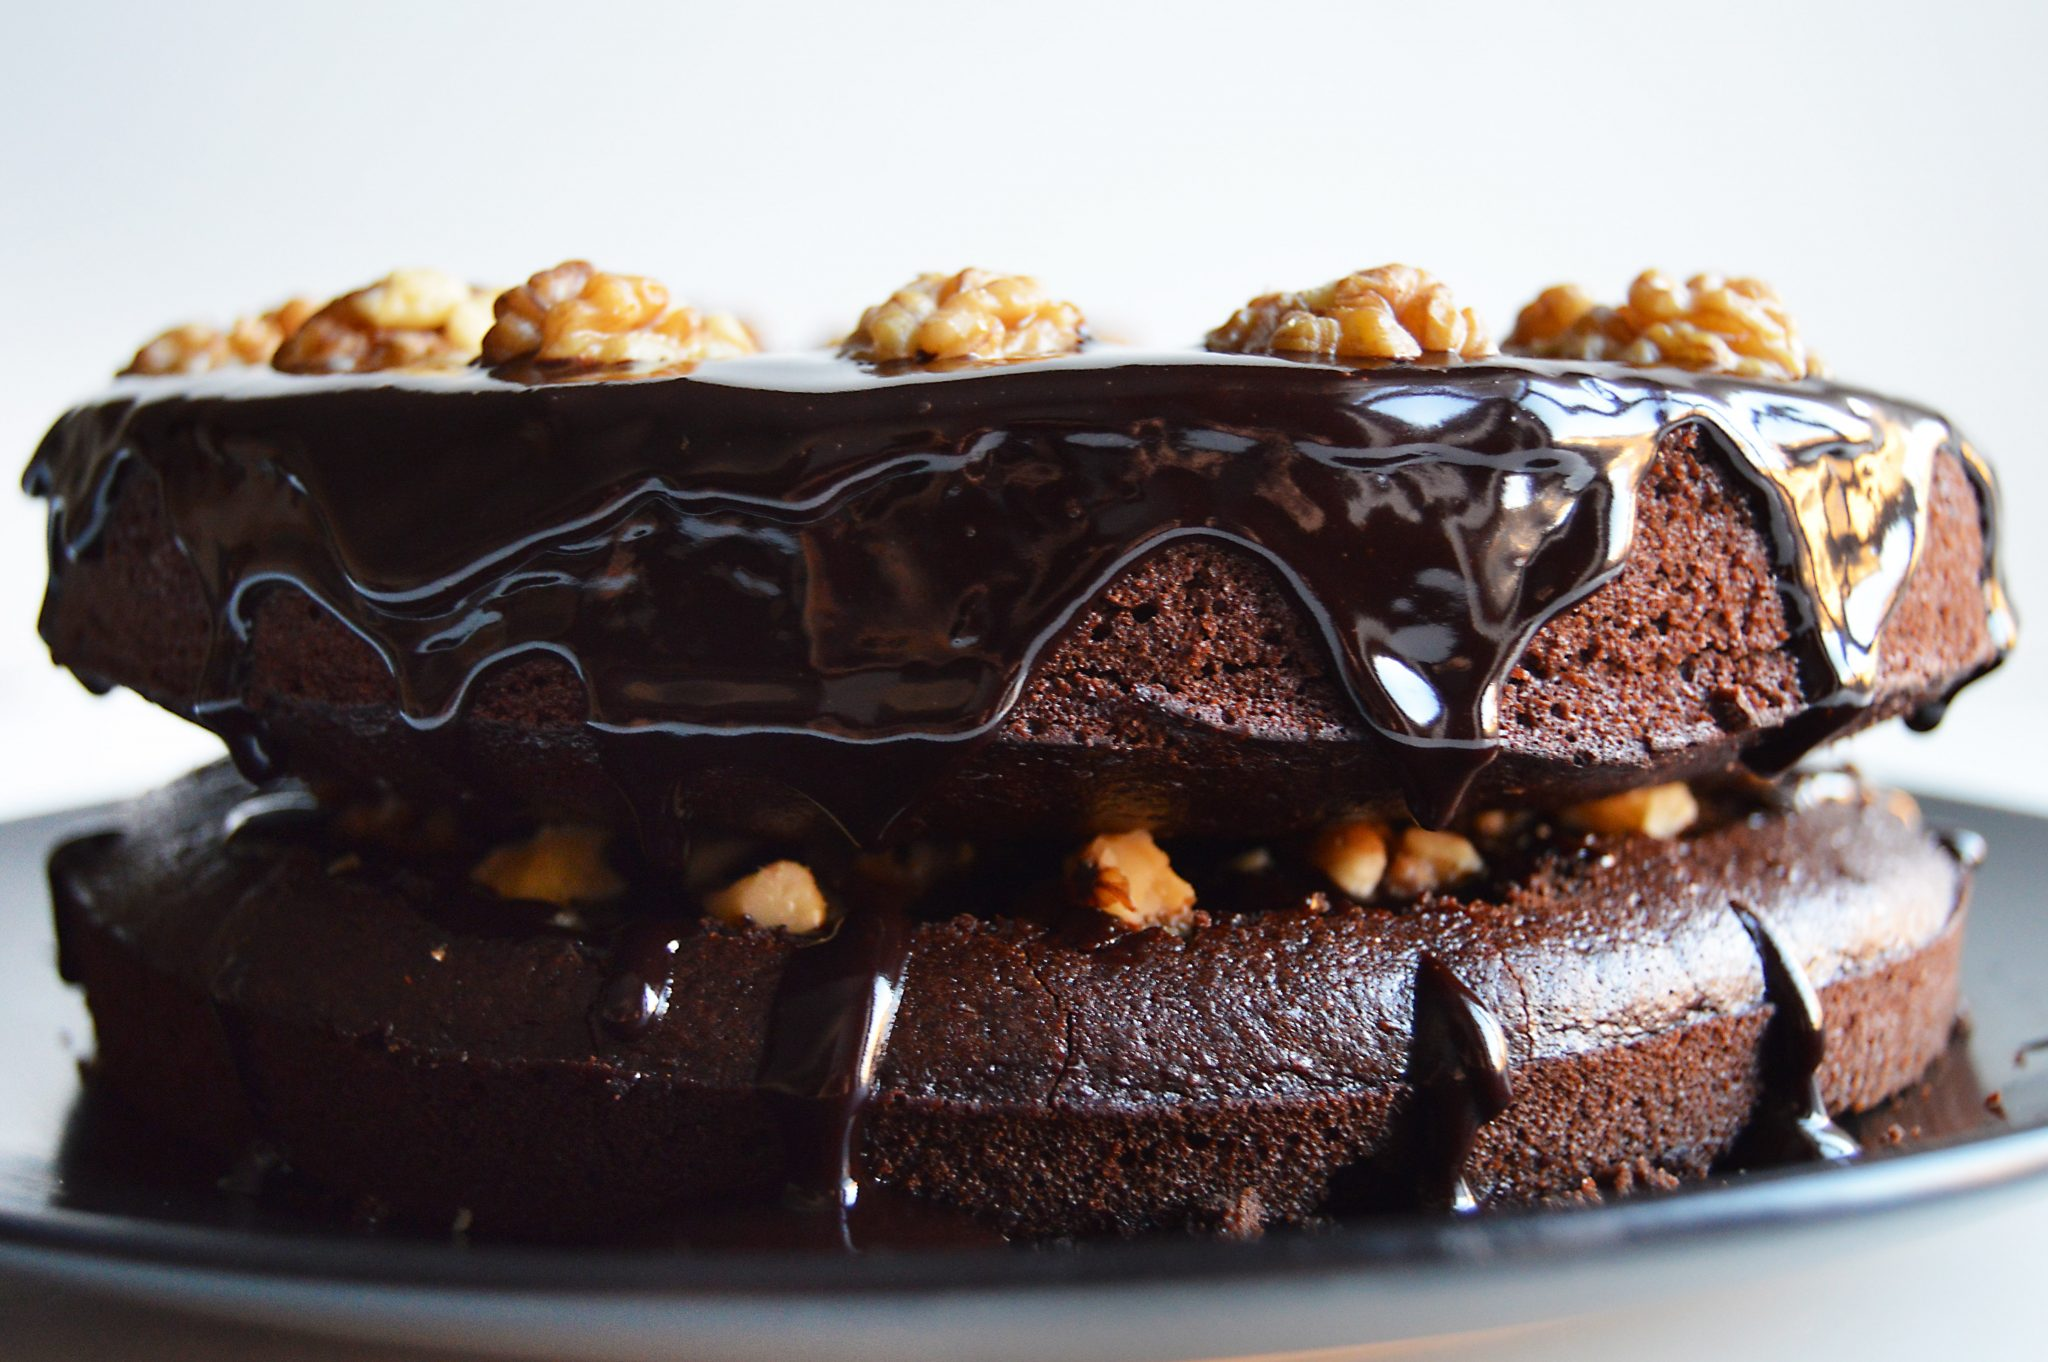 Vegan Chocolate Walnut Cake (+ Video) - My Vibrant Kitchen